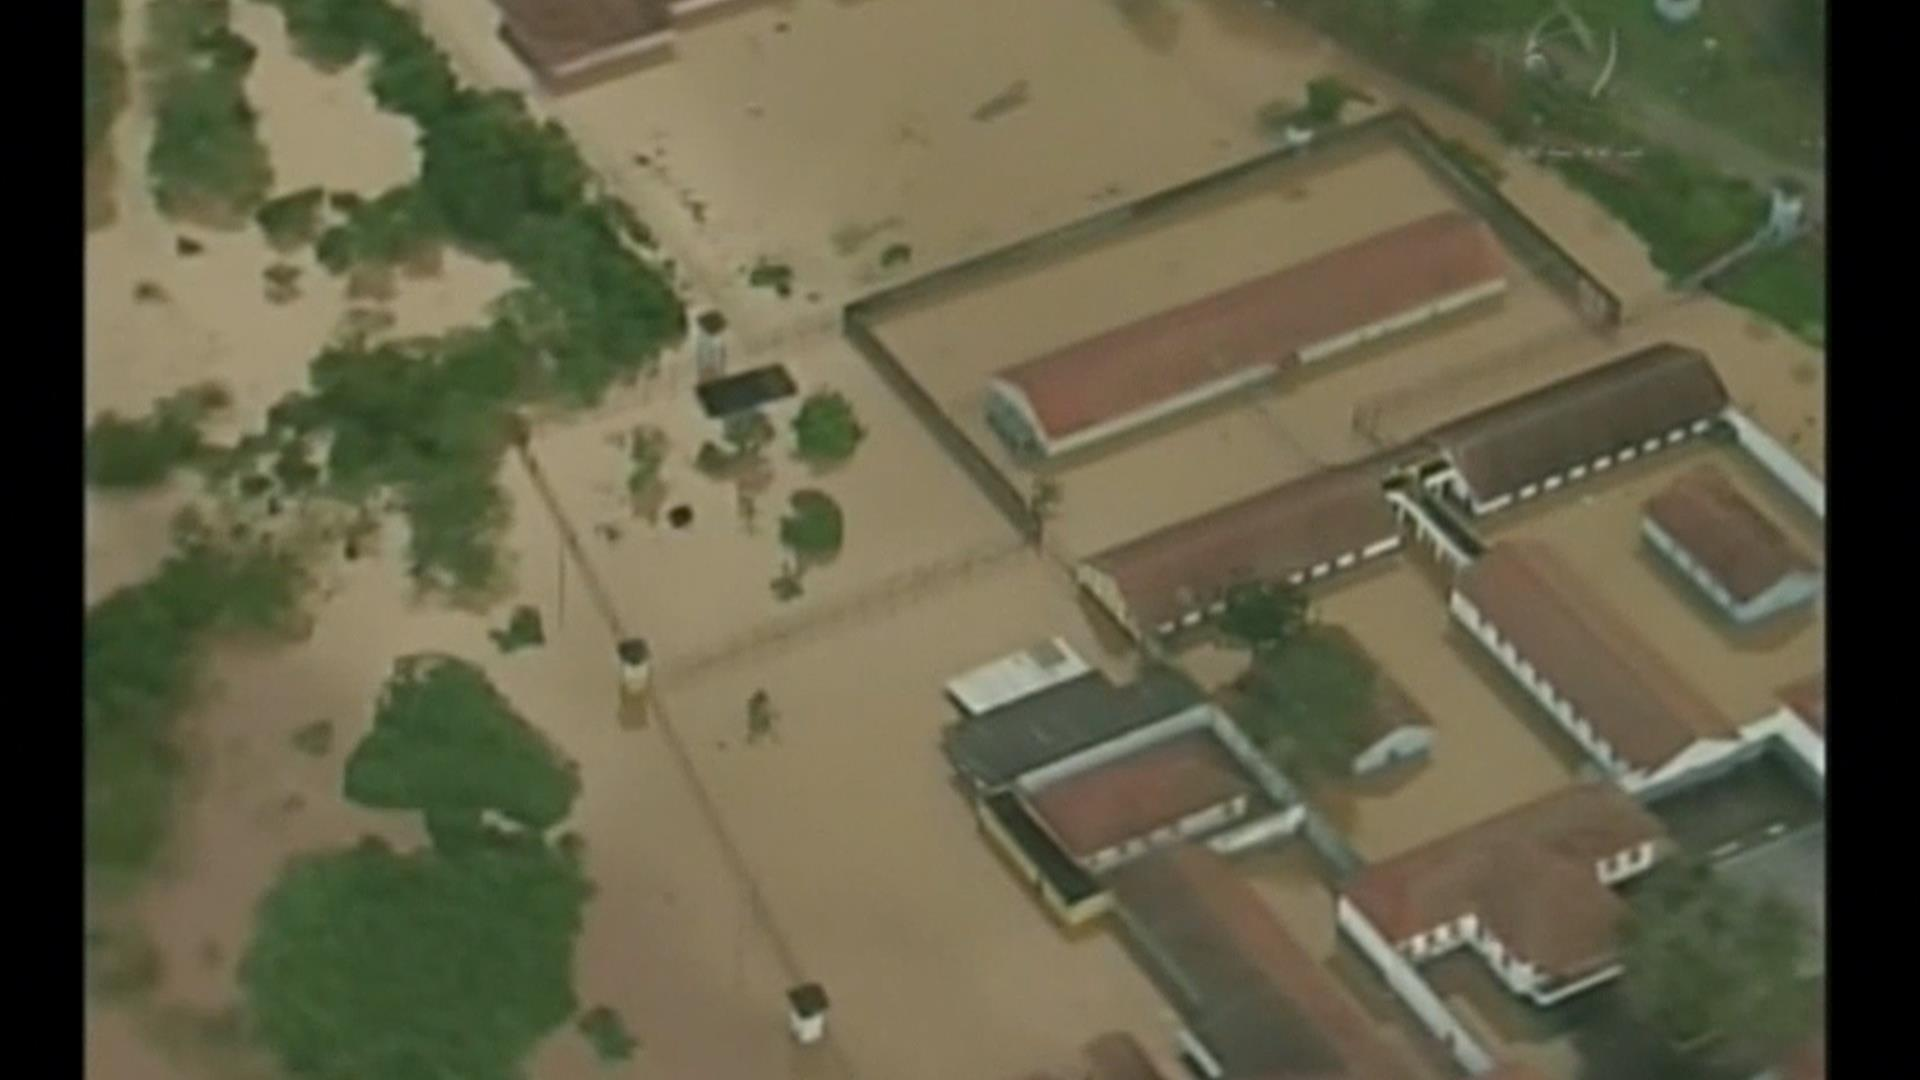 Aerials Show Extent of Damage From Heavy Rain in Brazil